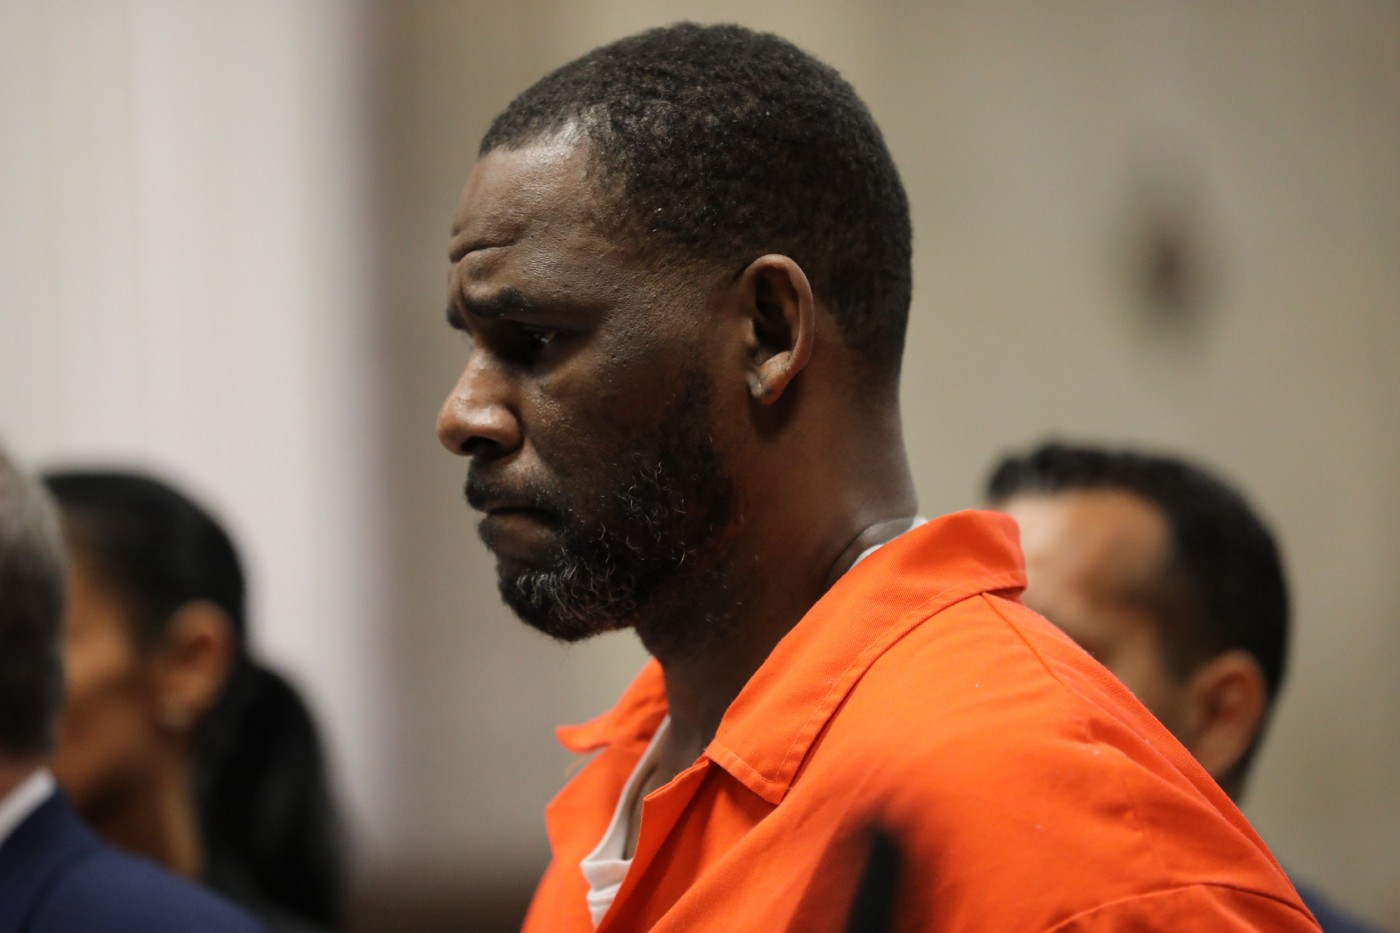 R. Kelly standing at a status hearing, wearing an orange prison jumpsuit